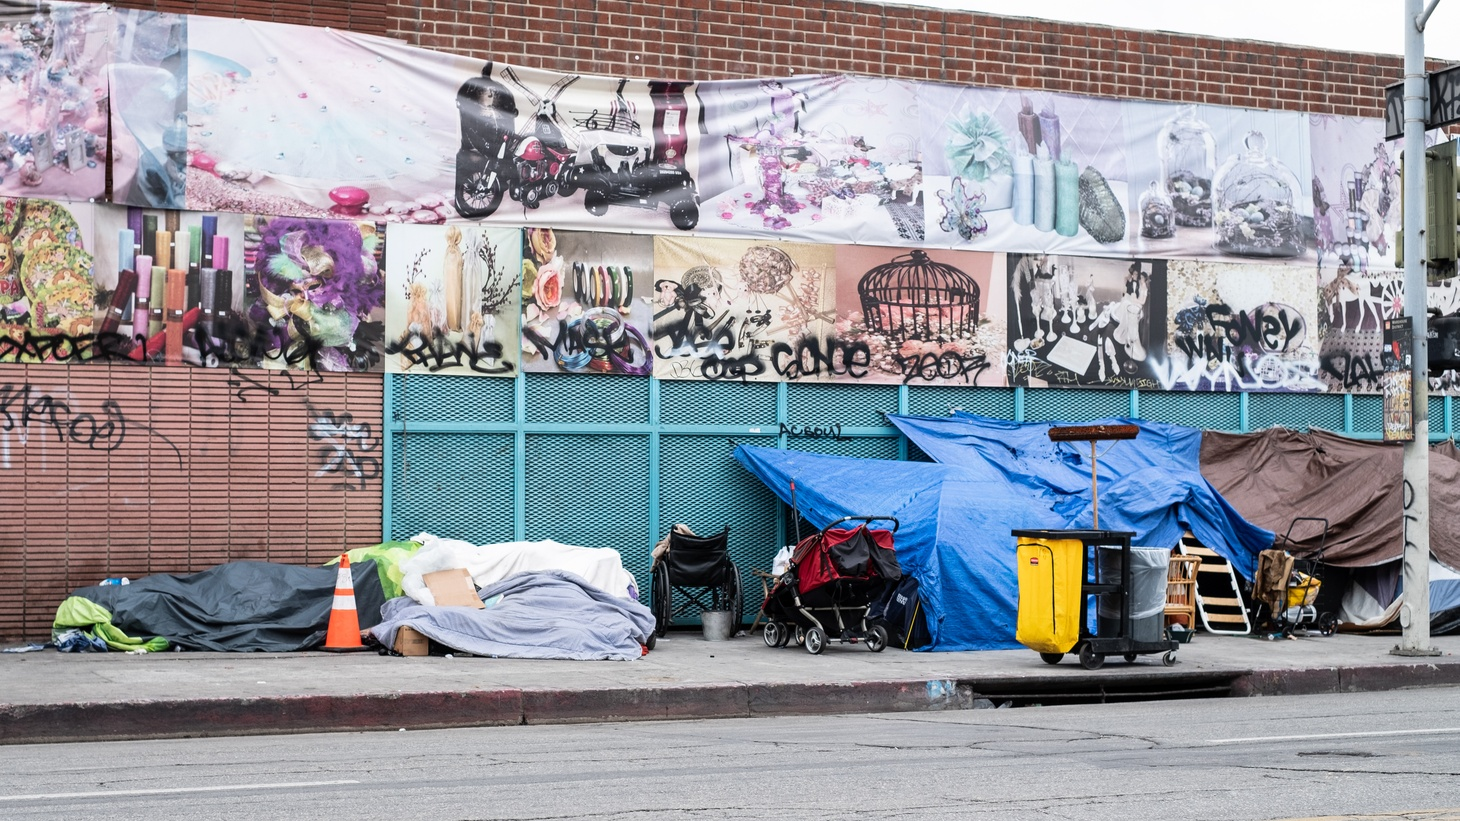 A homeless camp in LA's fashion district, spring 2019.